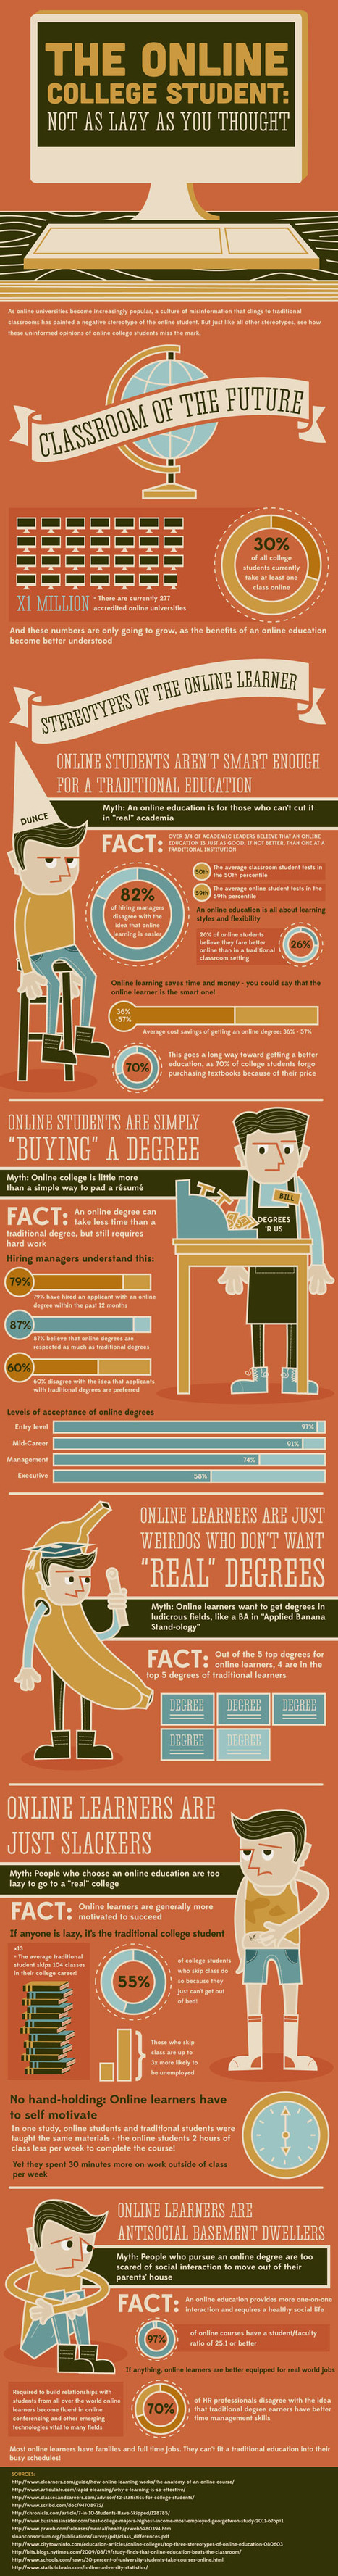 Do you have the wrong impression about online learning? [Infographic] | Wepyirang | Scoop.it